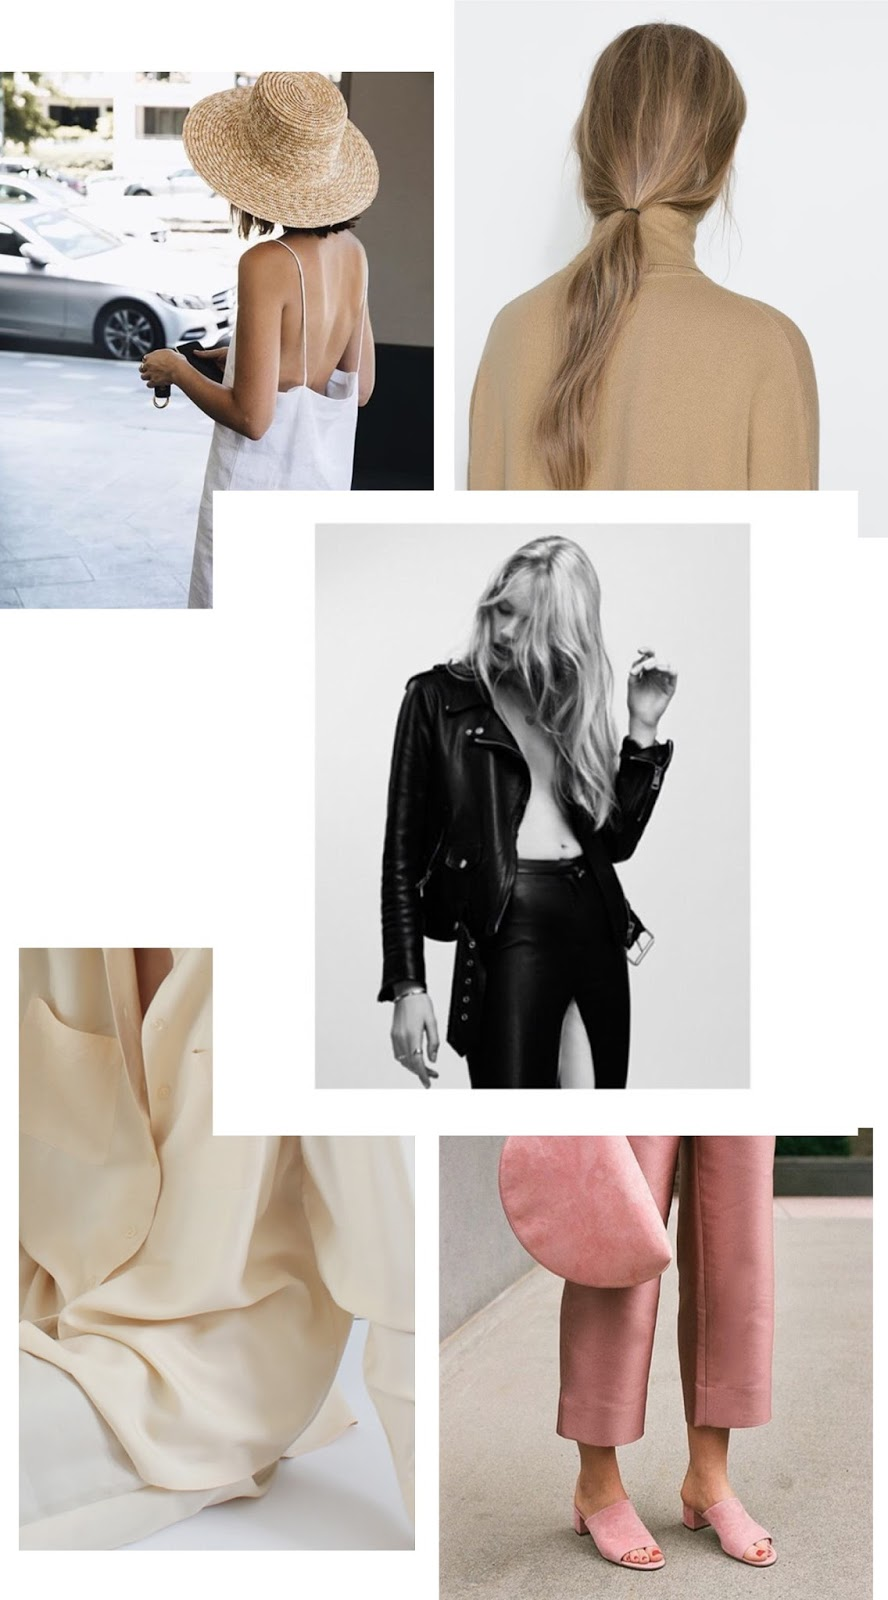 sunday-fashion-inspiration-tumblr-pink-outfit-moodboard